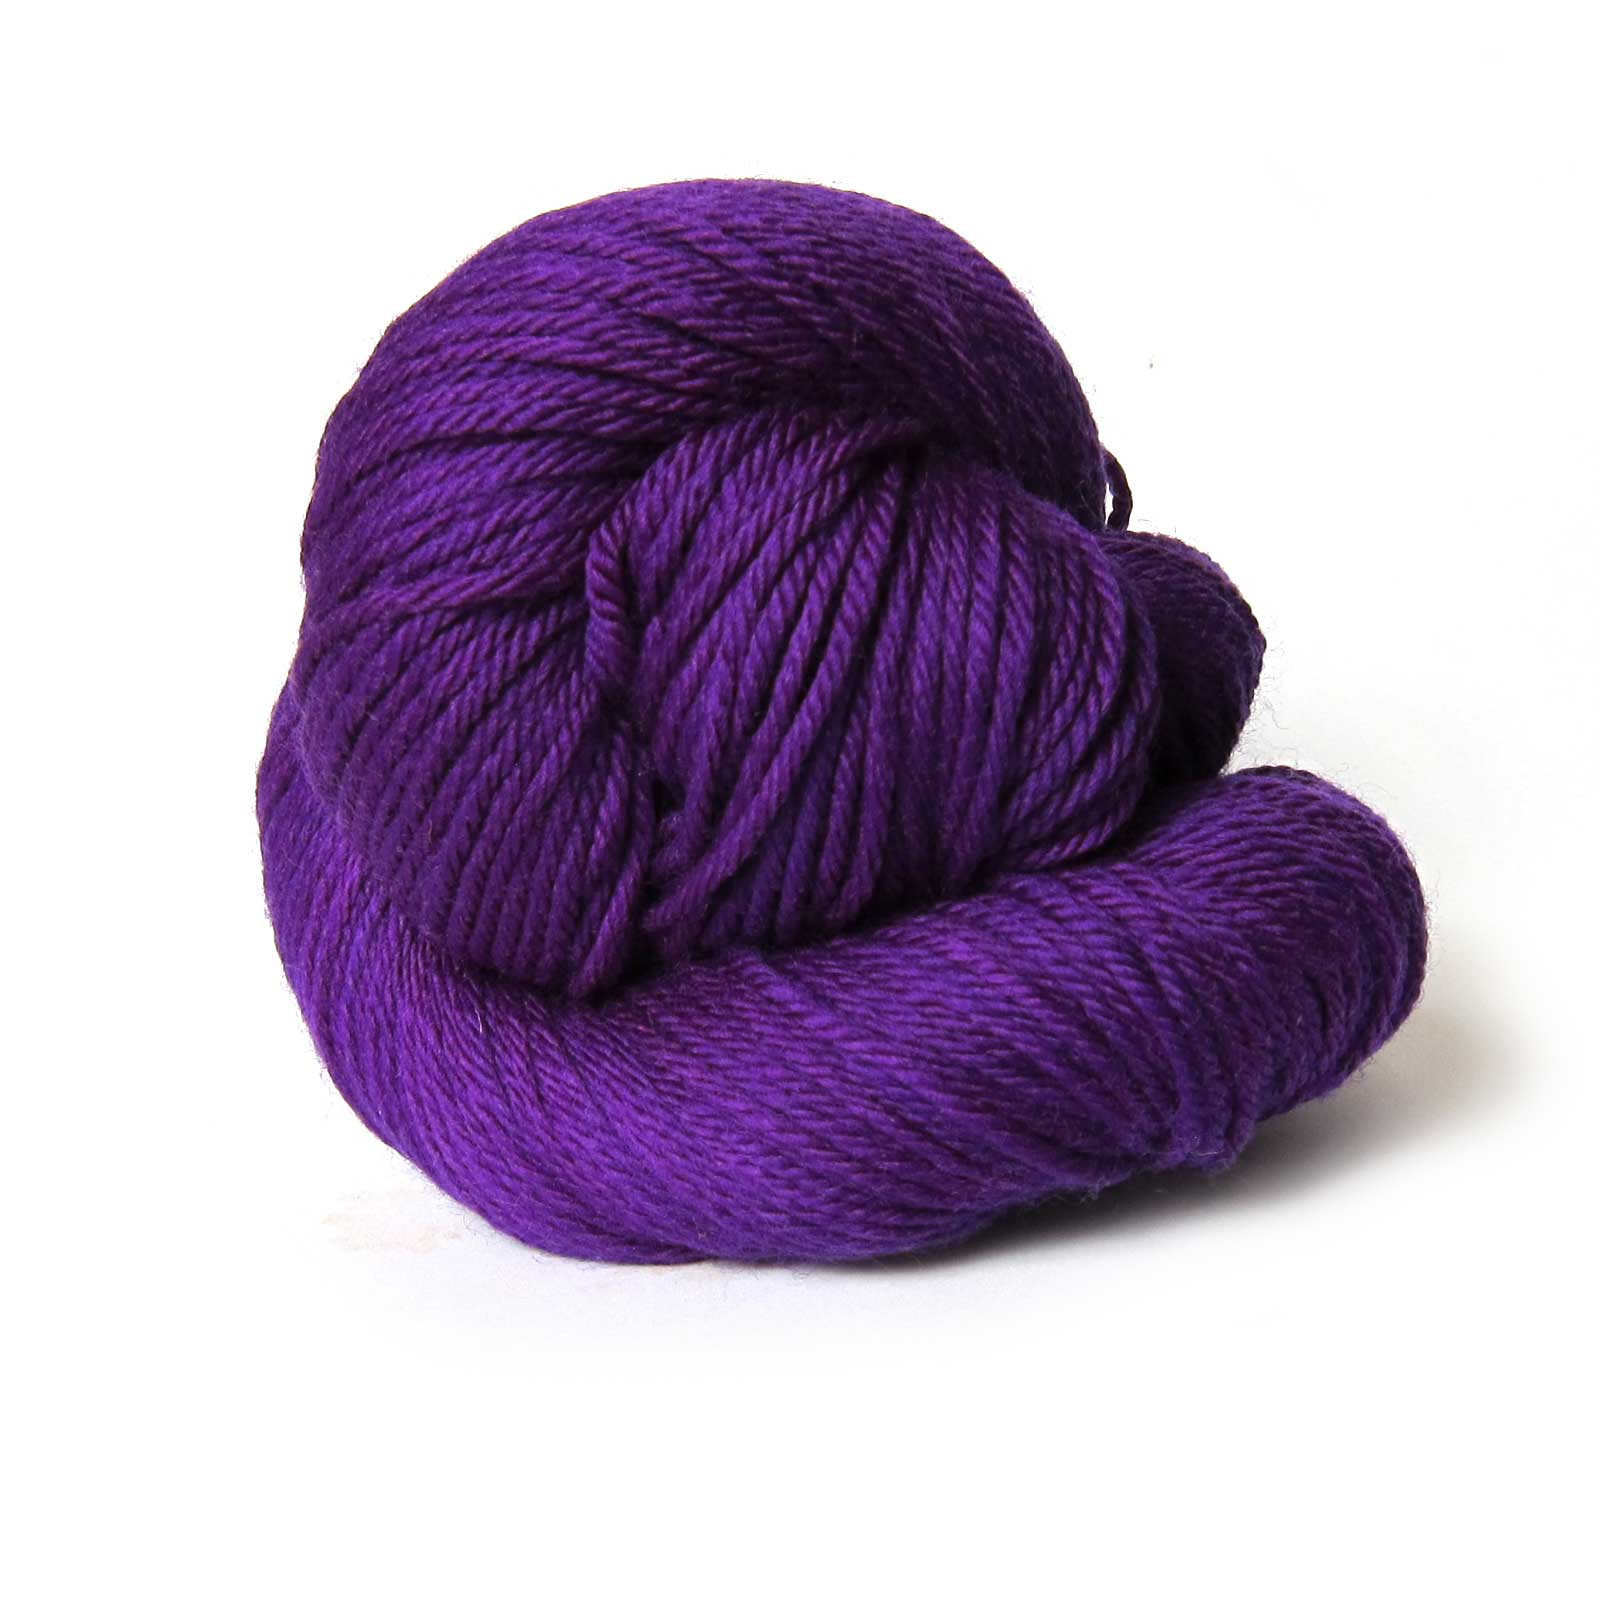 Amethyst Gems 100% Merino Superwash Yarn